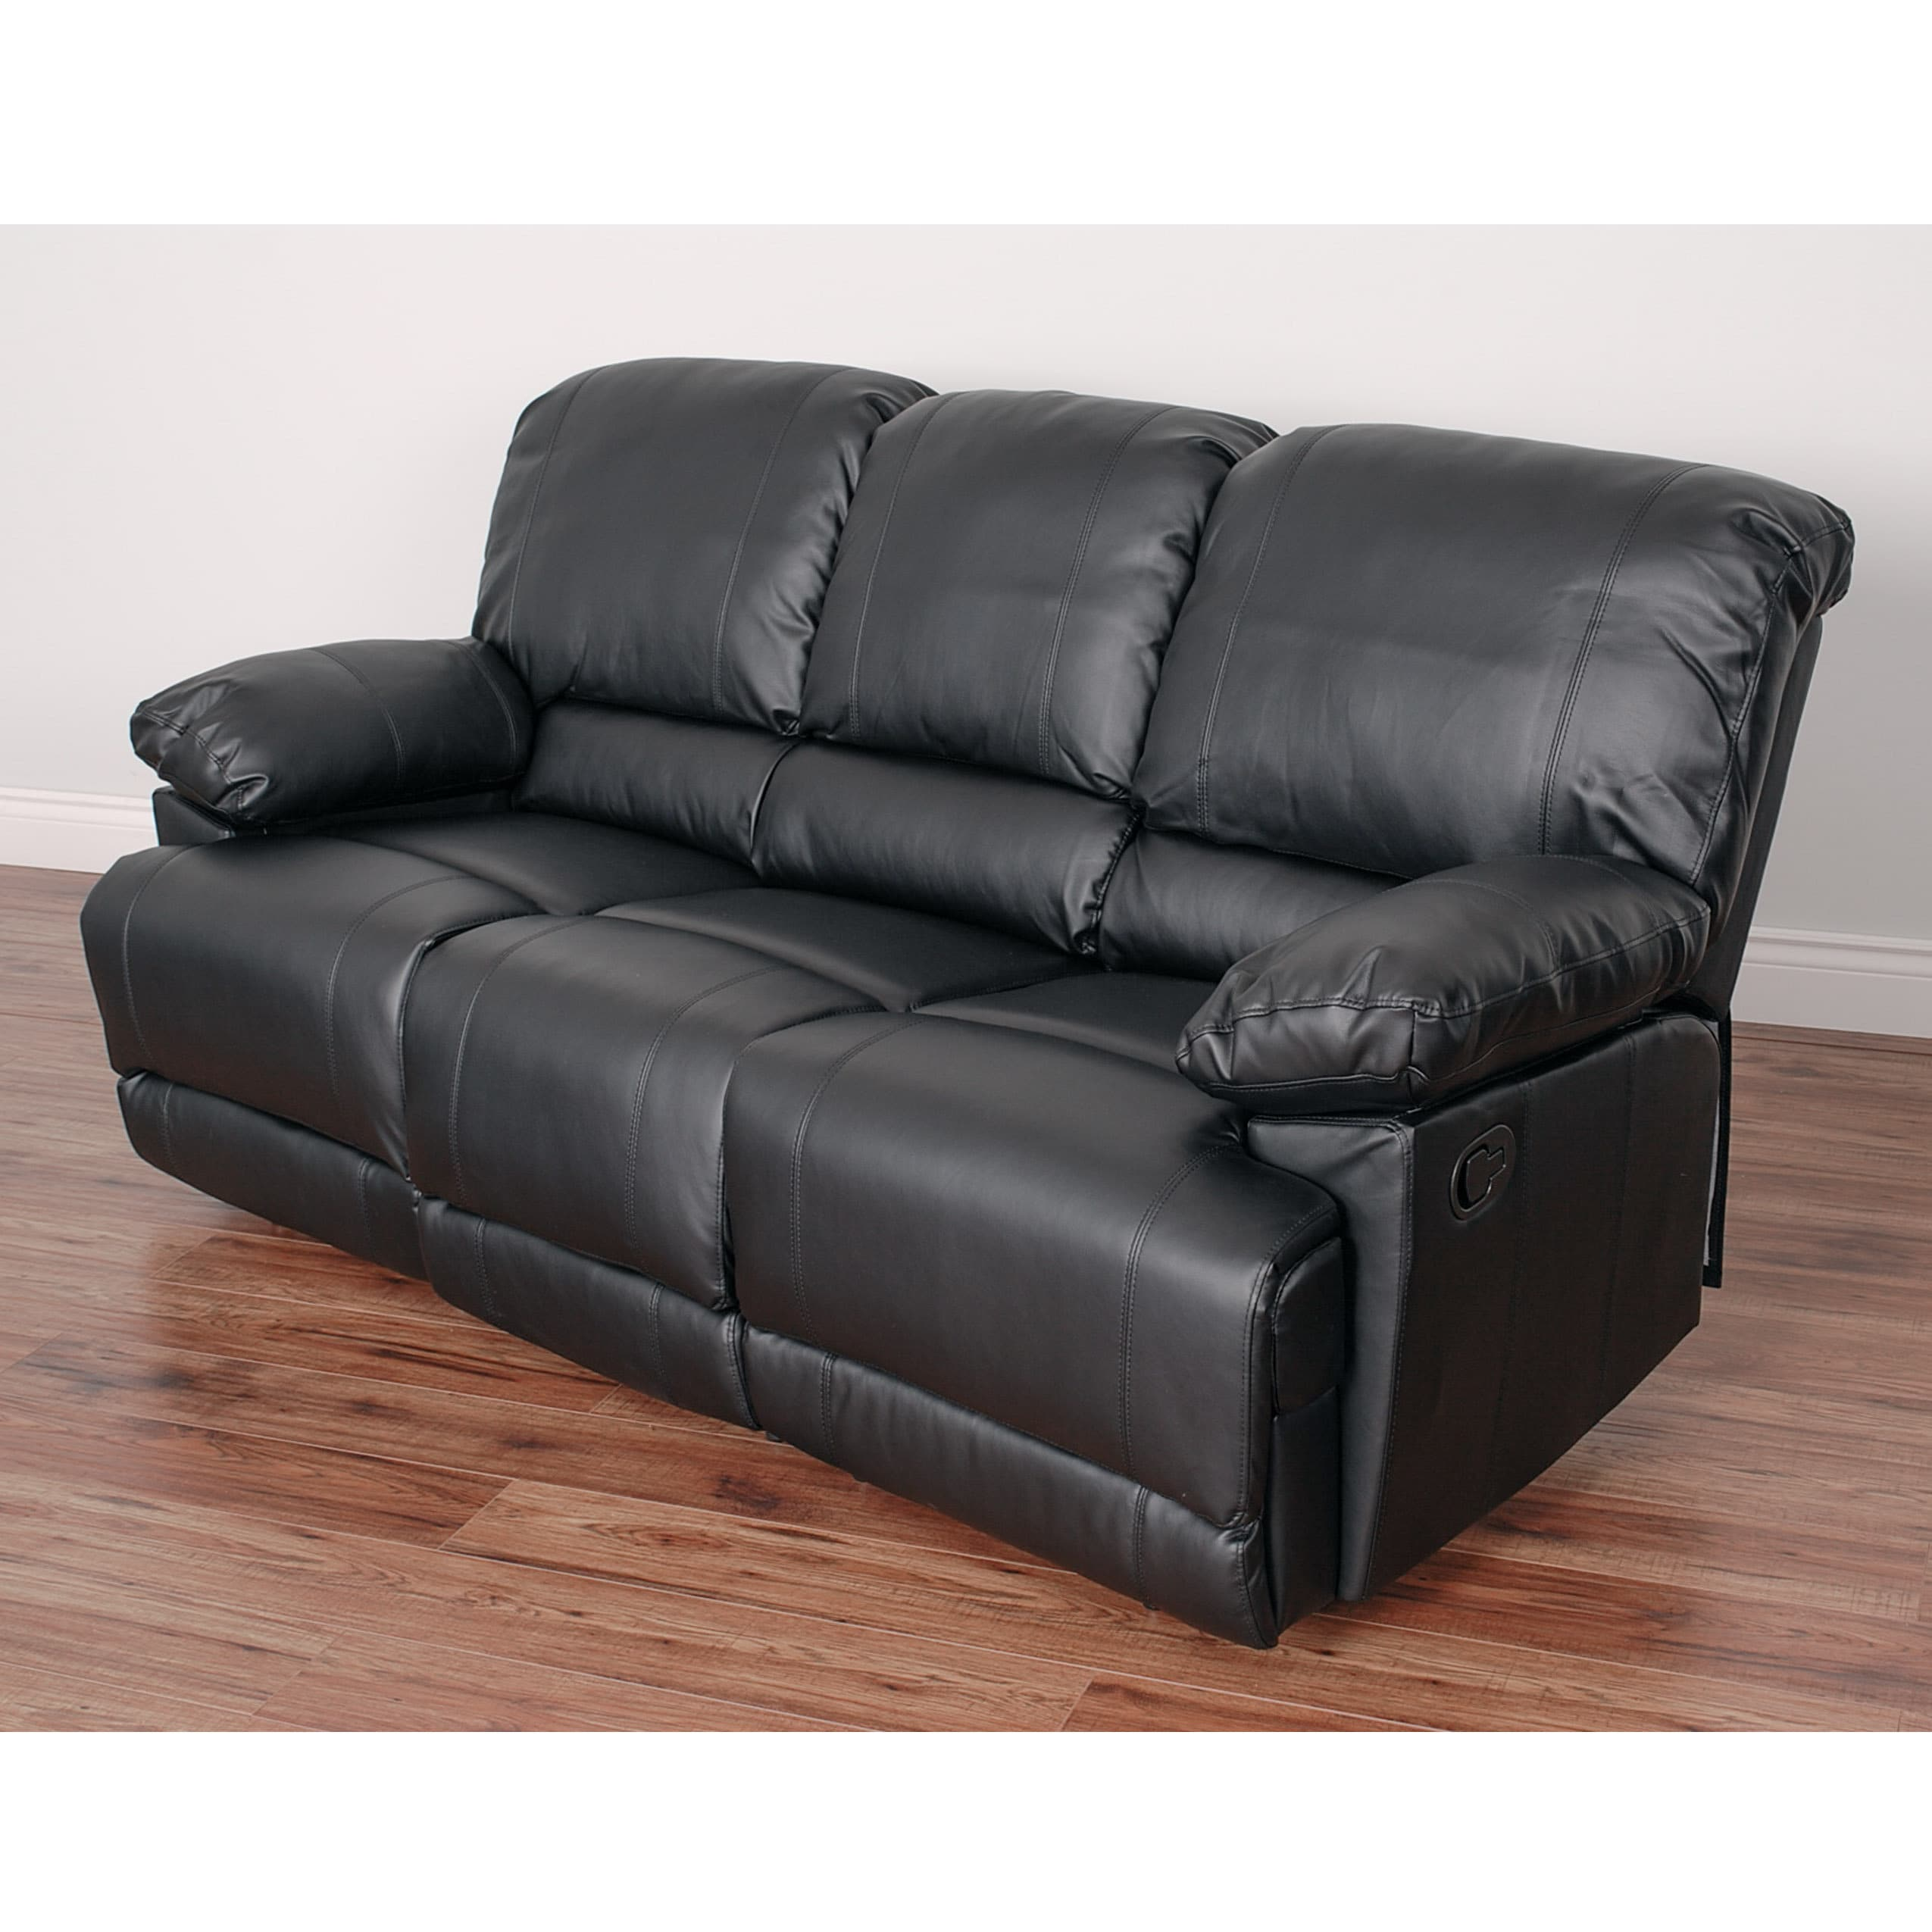 Black Sofas Couches Online At Our Best Living Room Furniture Deals